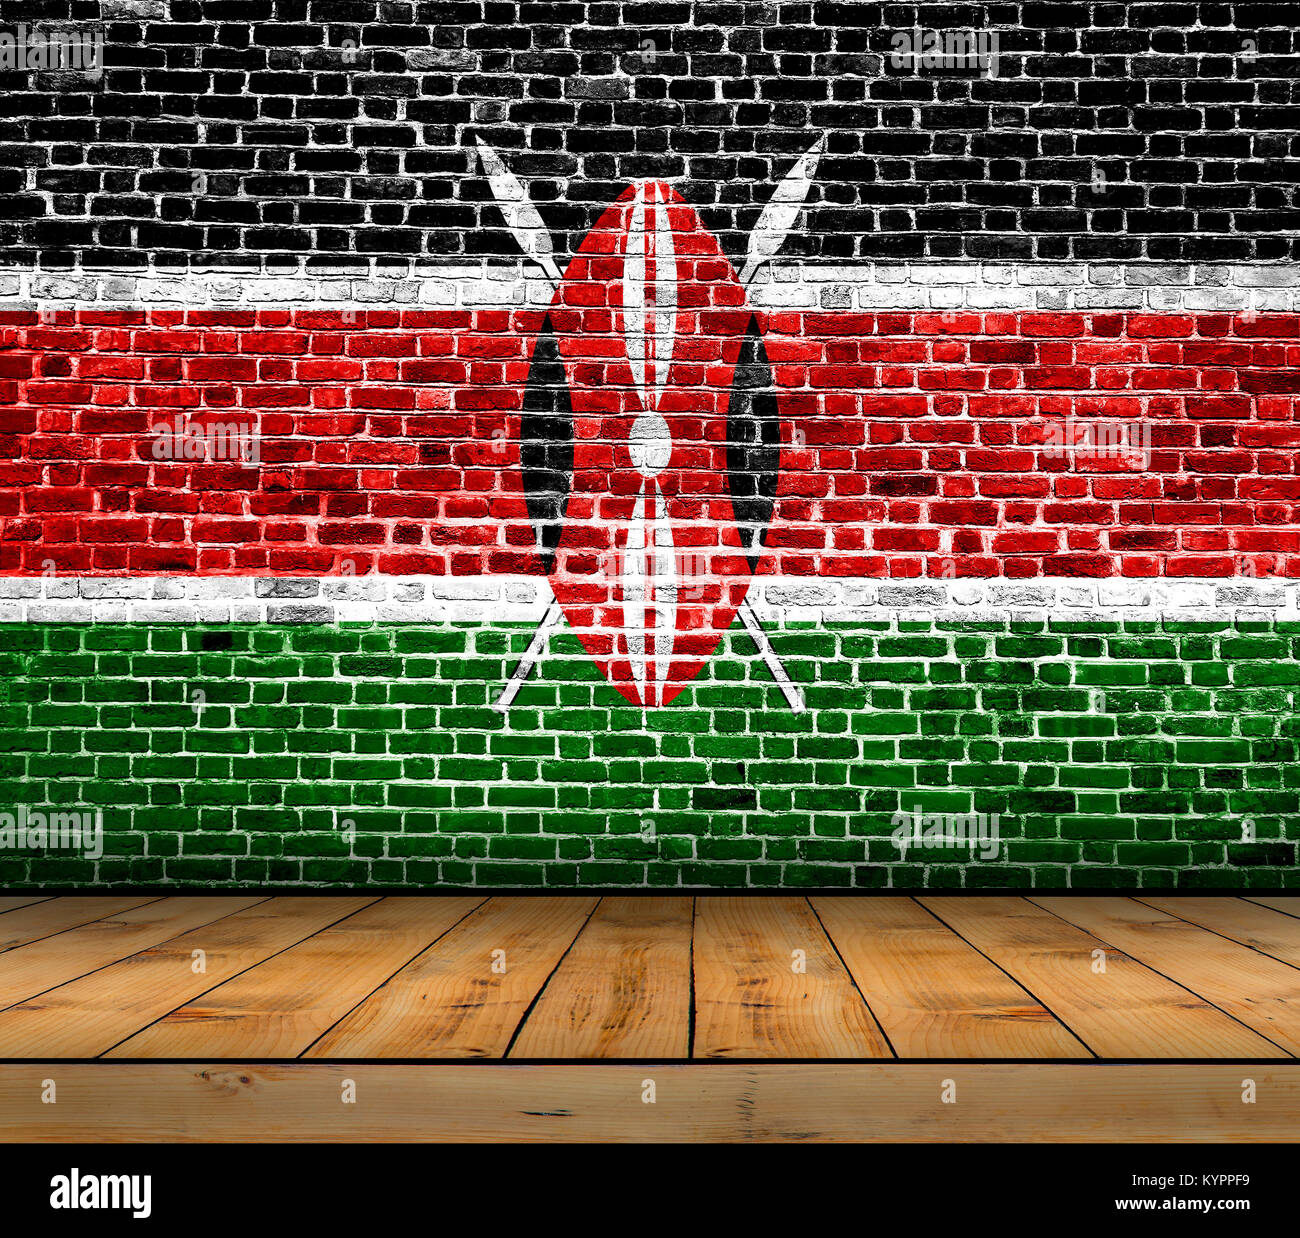 Kenya flag painted on brick wall with wooden floor Stock Photo